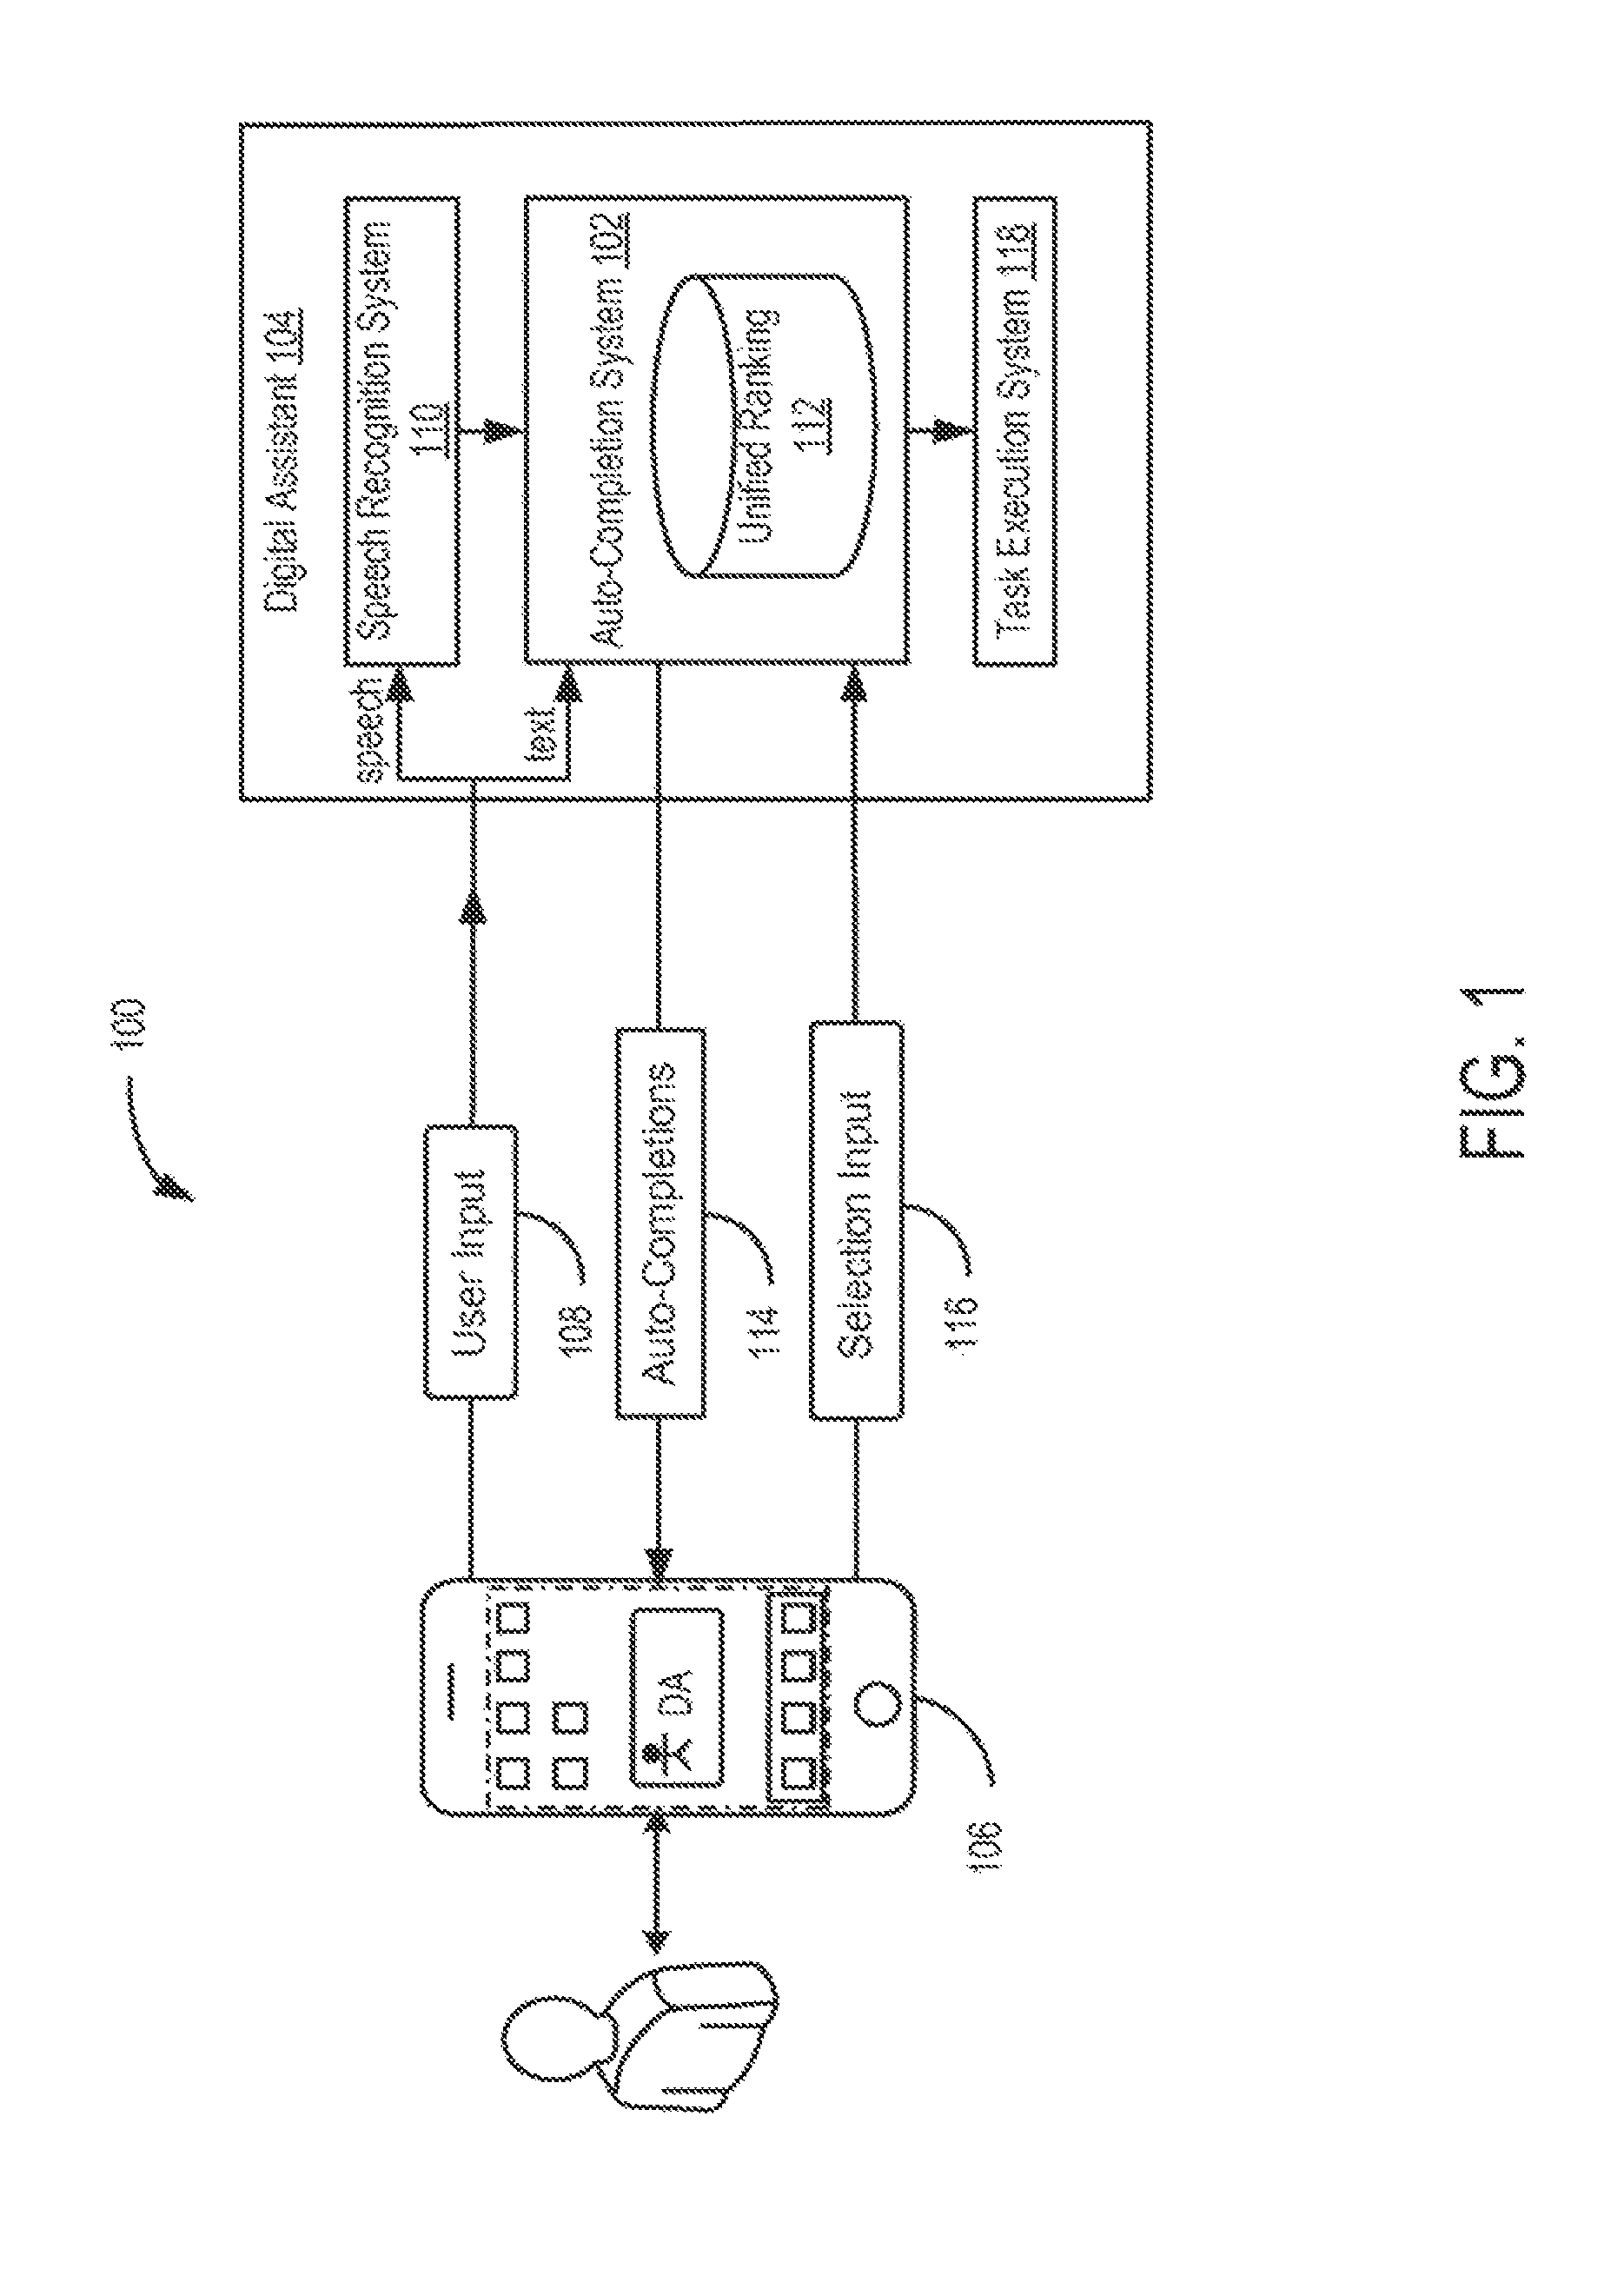 us9582608b2 unified ranking with entropy weighted information for